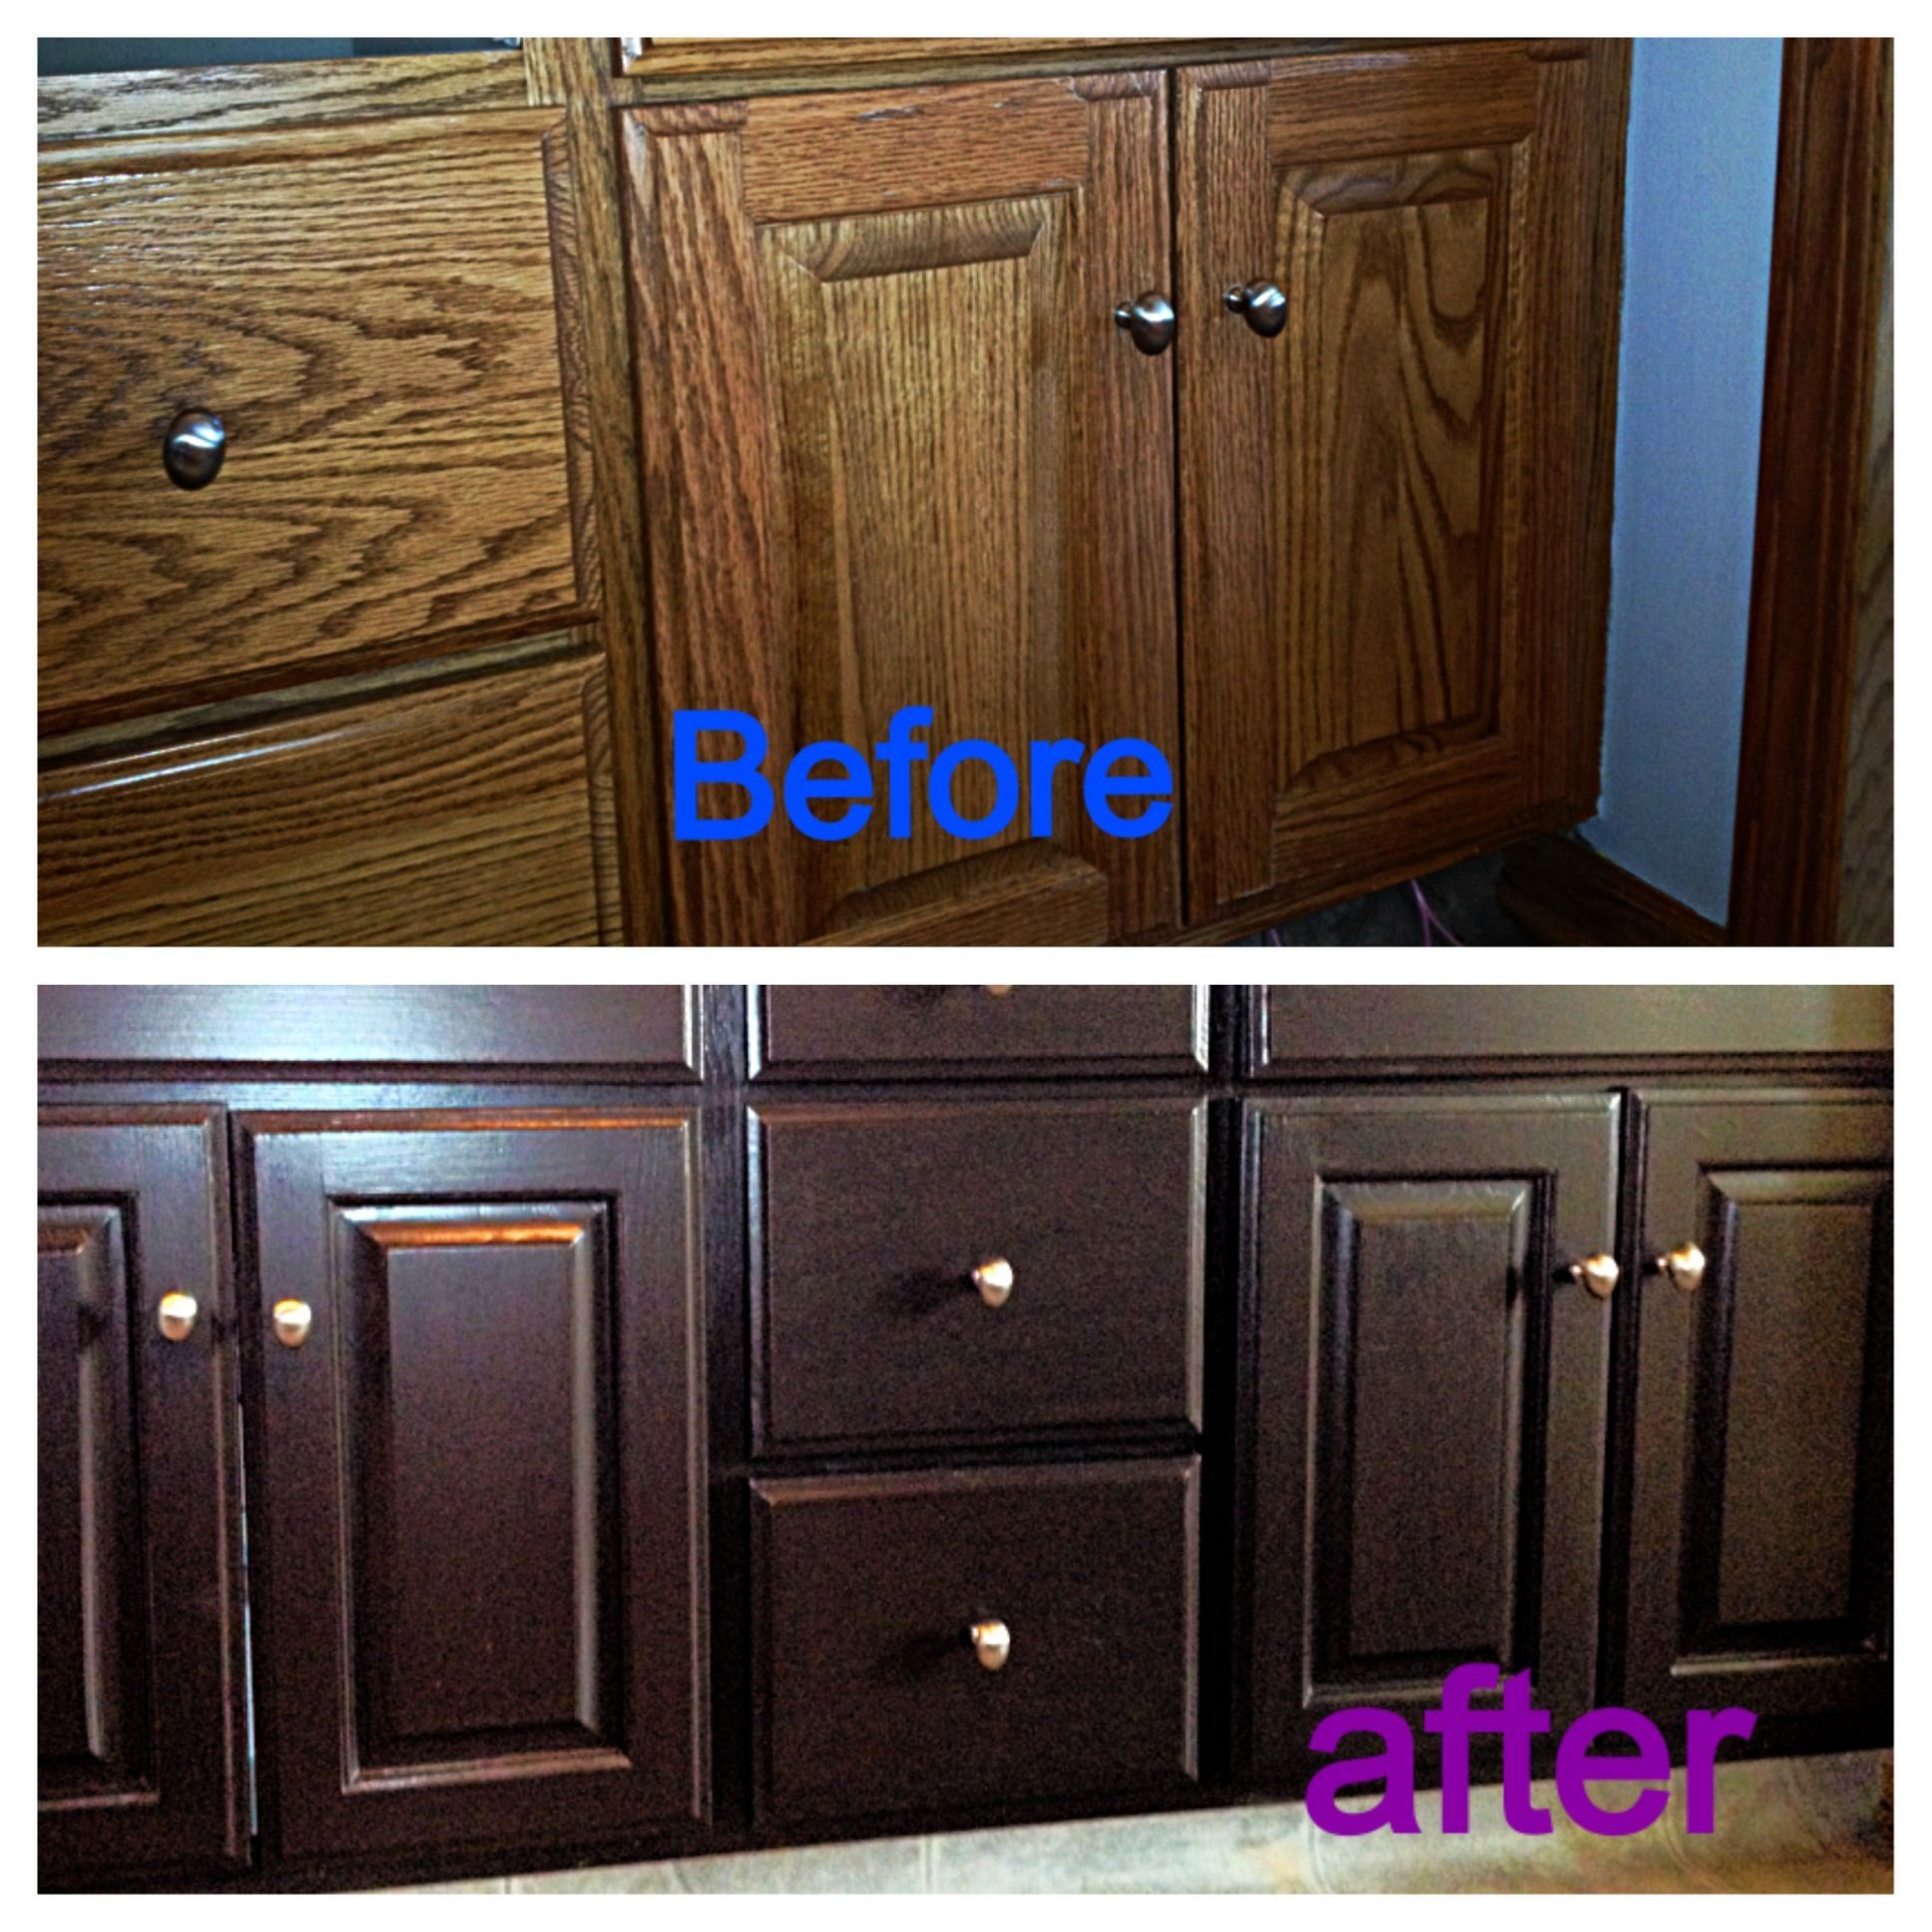 Refinished Without Any Sanding Rustoleum Cabinet Transformations Kit From Lowes Rustoleum Cabinet Painted Furniture Diy Projects Ikea